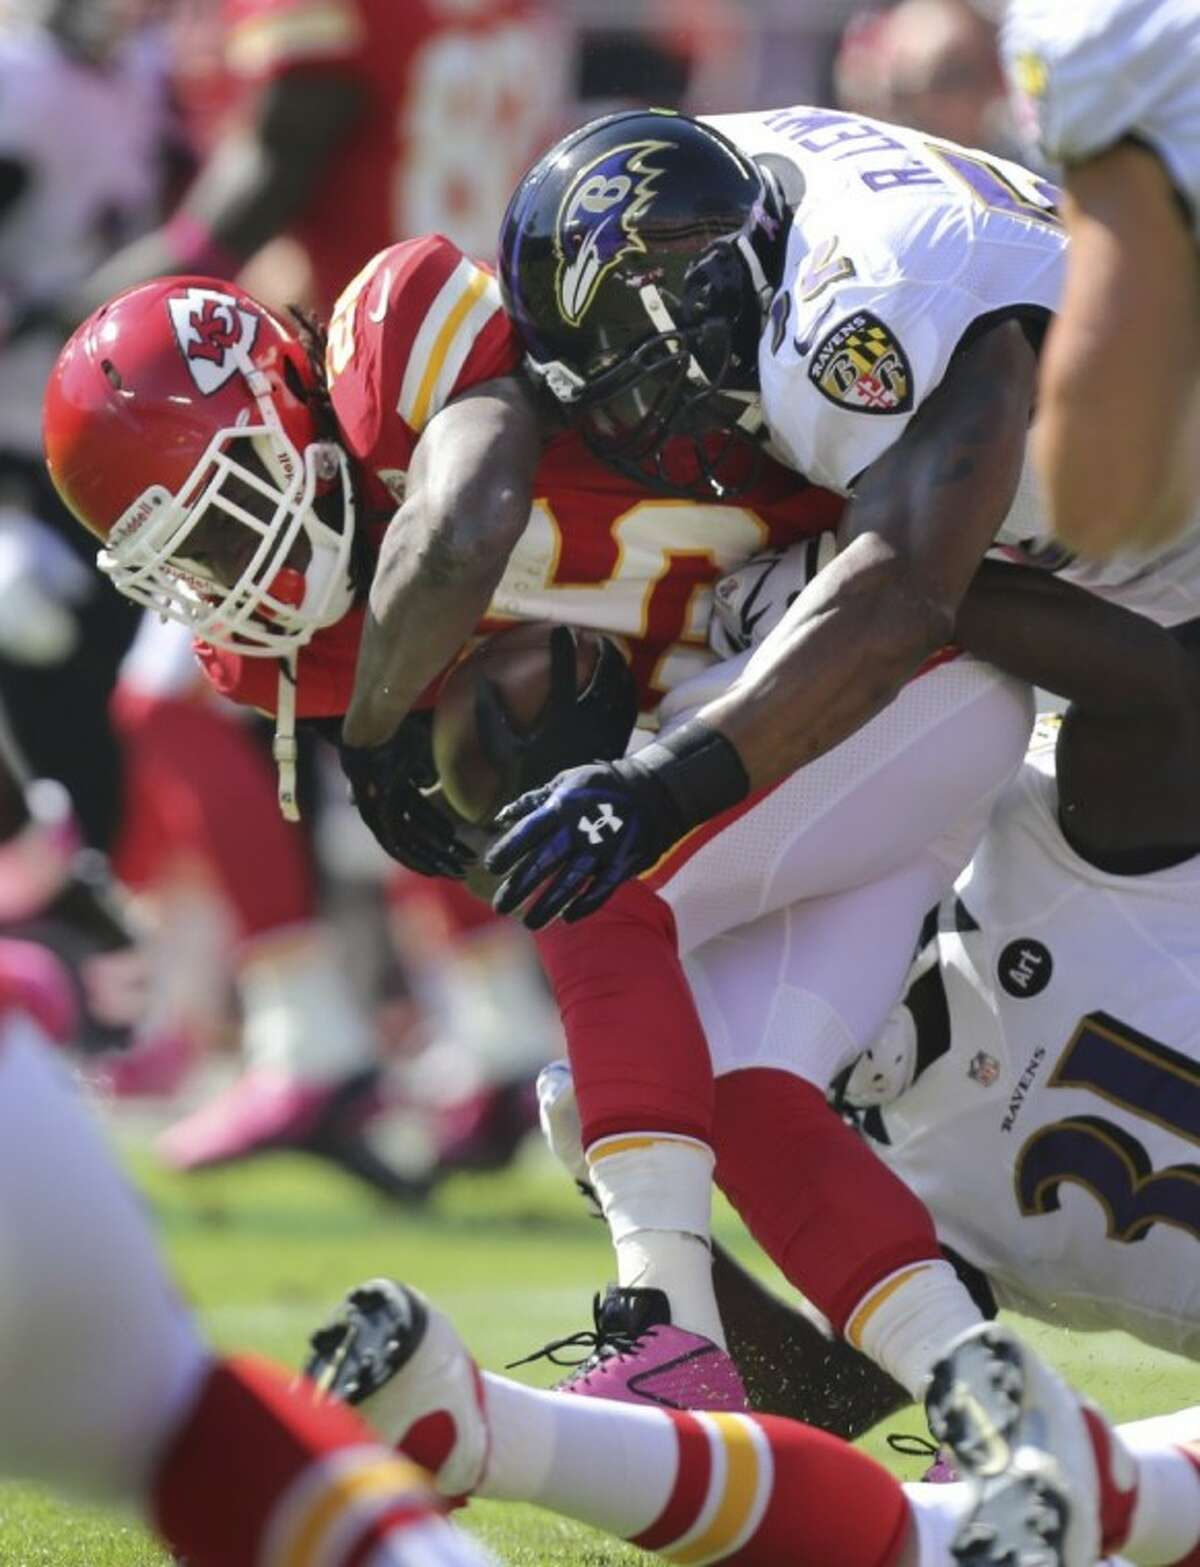 Baltimore Ravens linebacker Ray Lewis, here bringing down Kansas City's Jamaal Charles, has been lost for the season with a torn triceps.